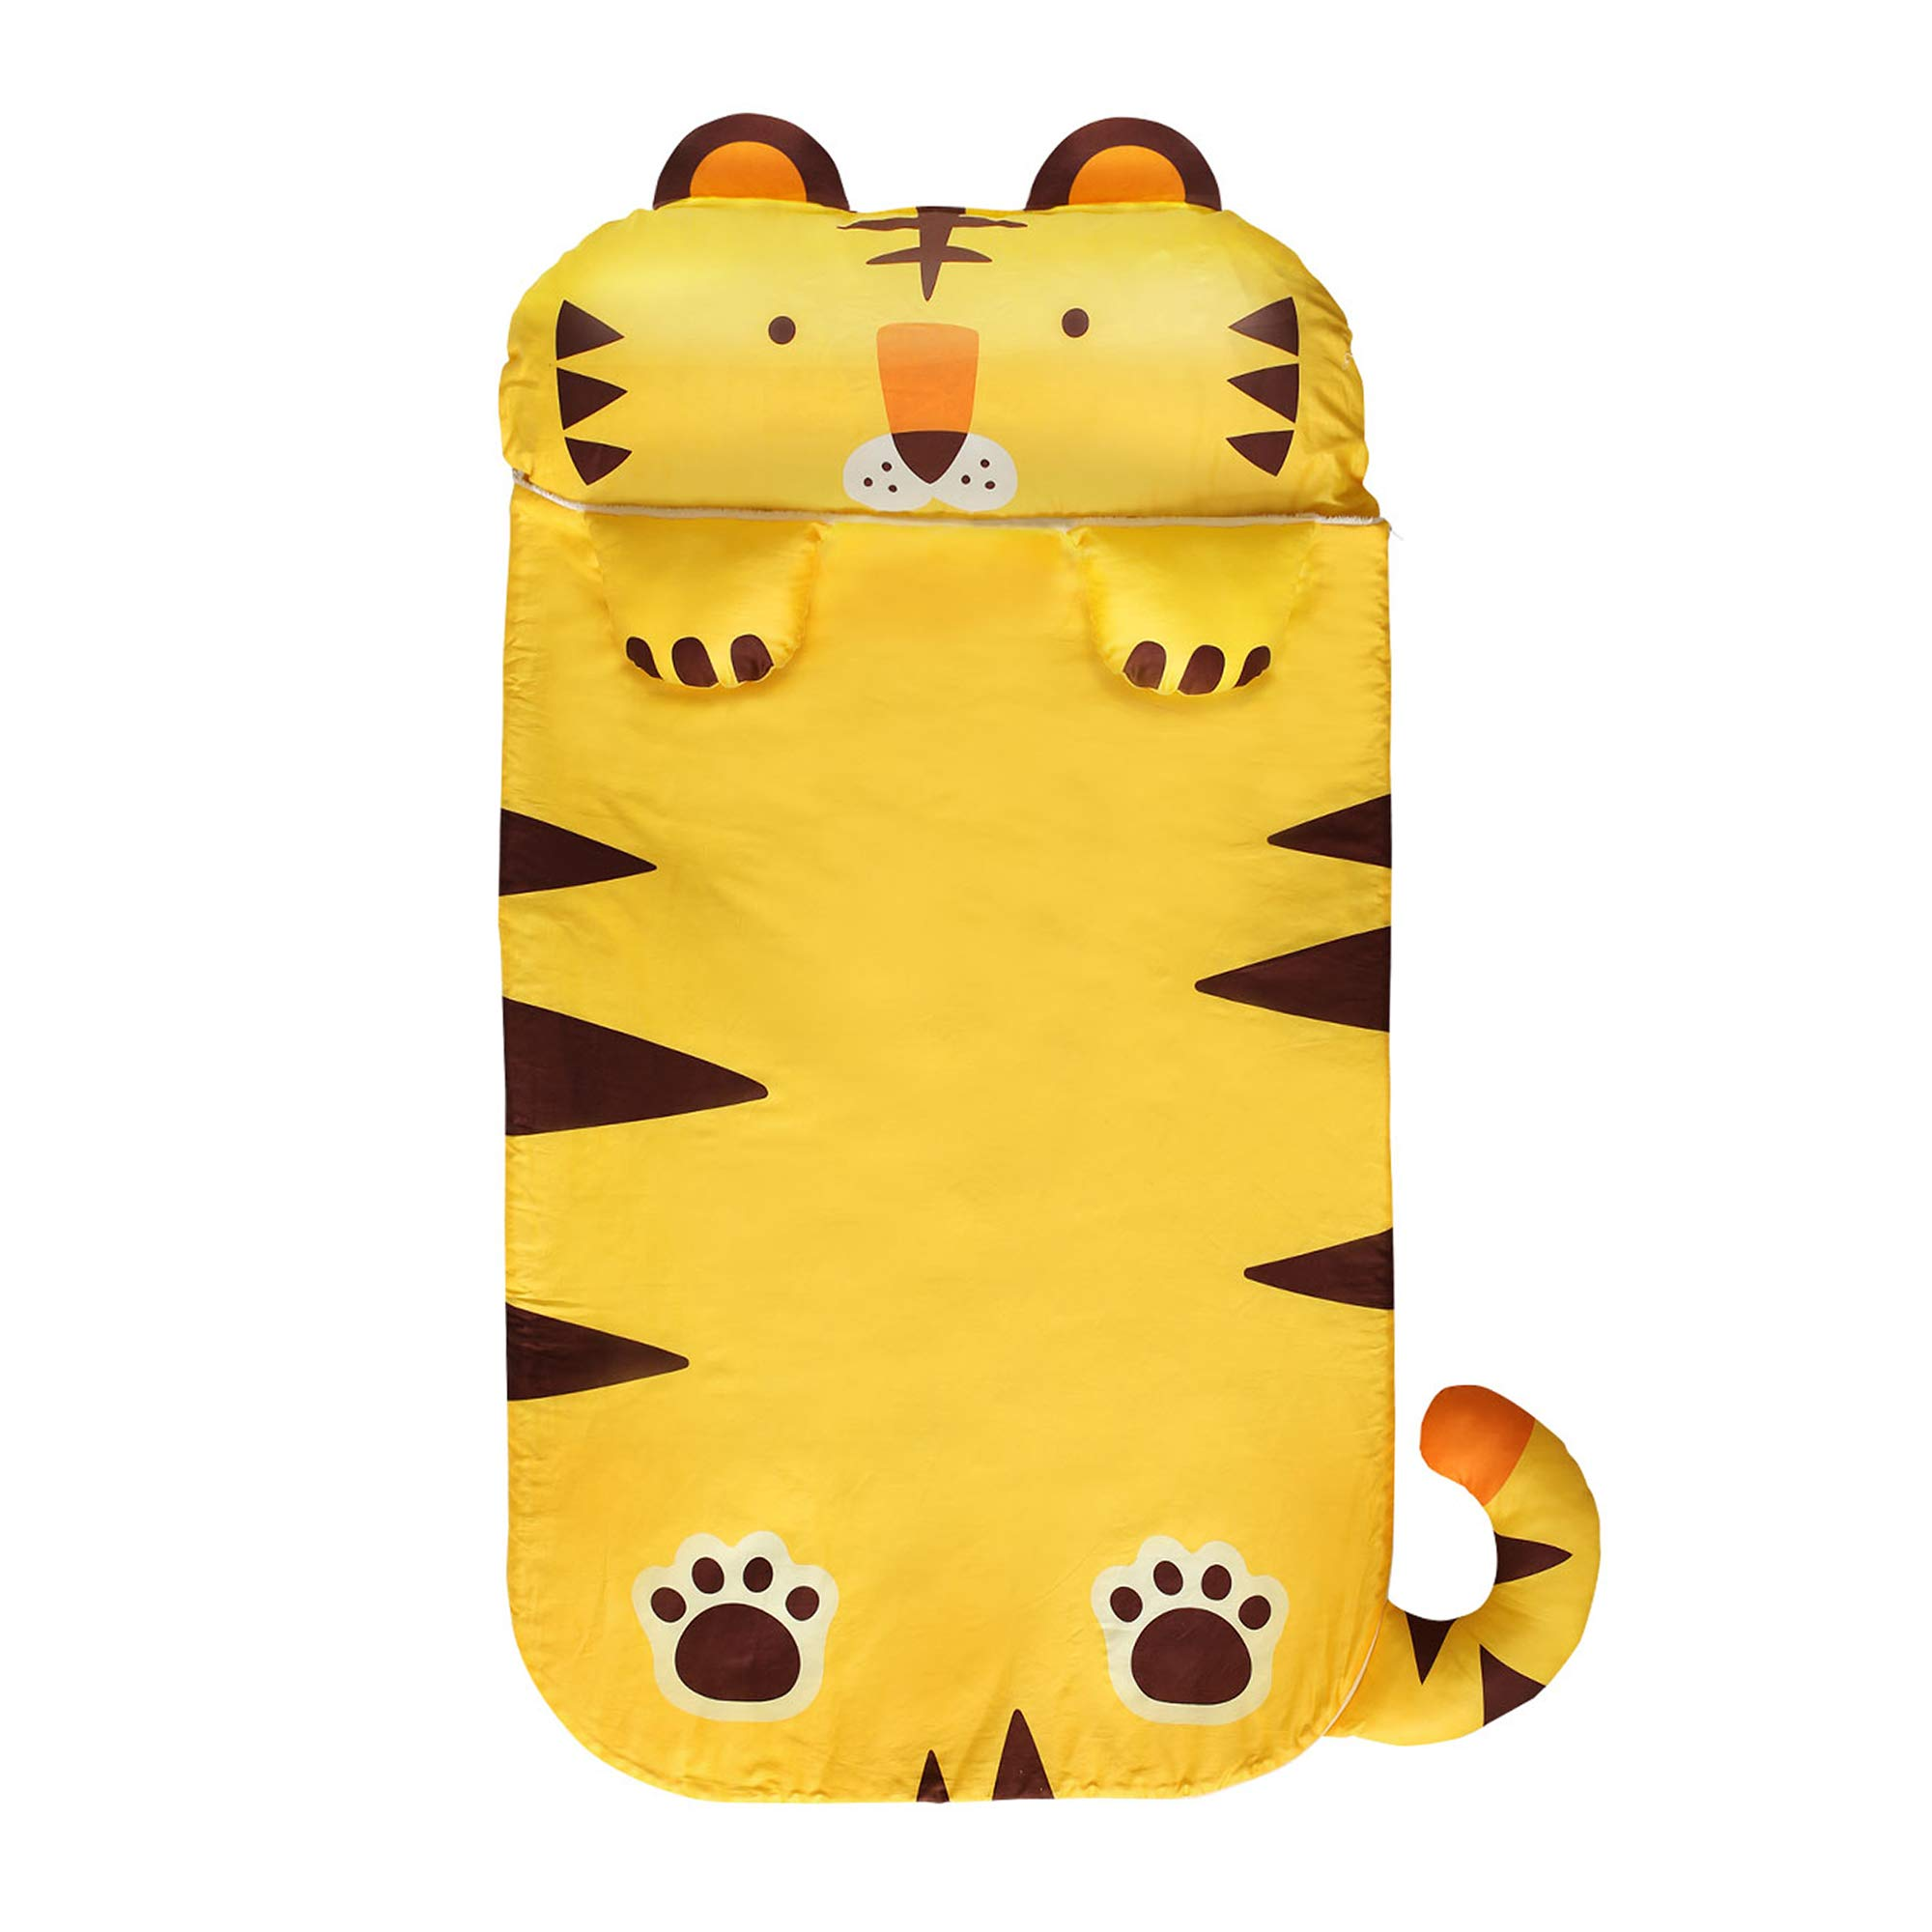 Milo&Gabby Nap Mat with Duvet, Removable Pillow and Blanket, 320 Thread Count Cotton (Tiger - Tom) by MILO & GABBY